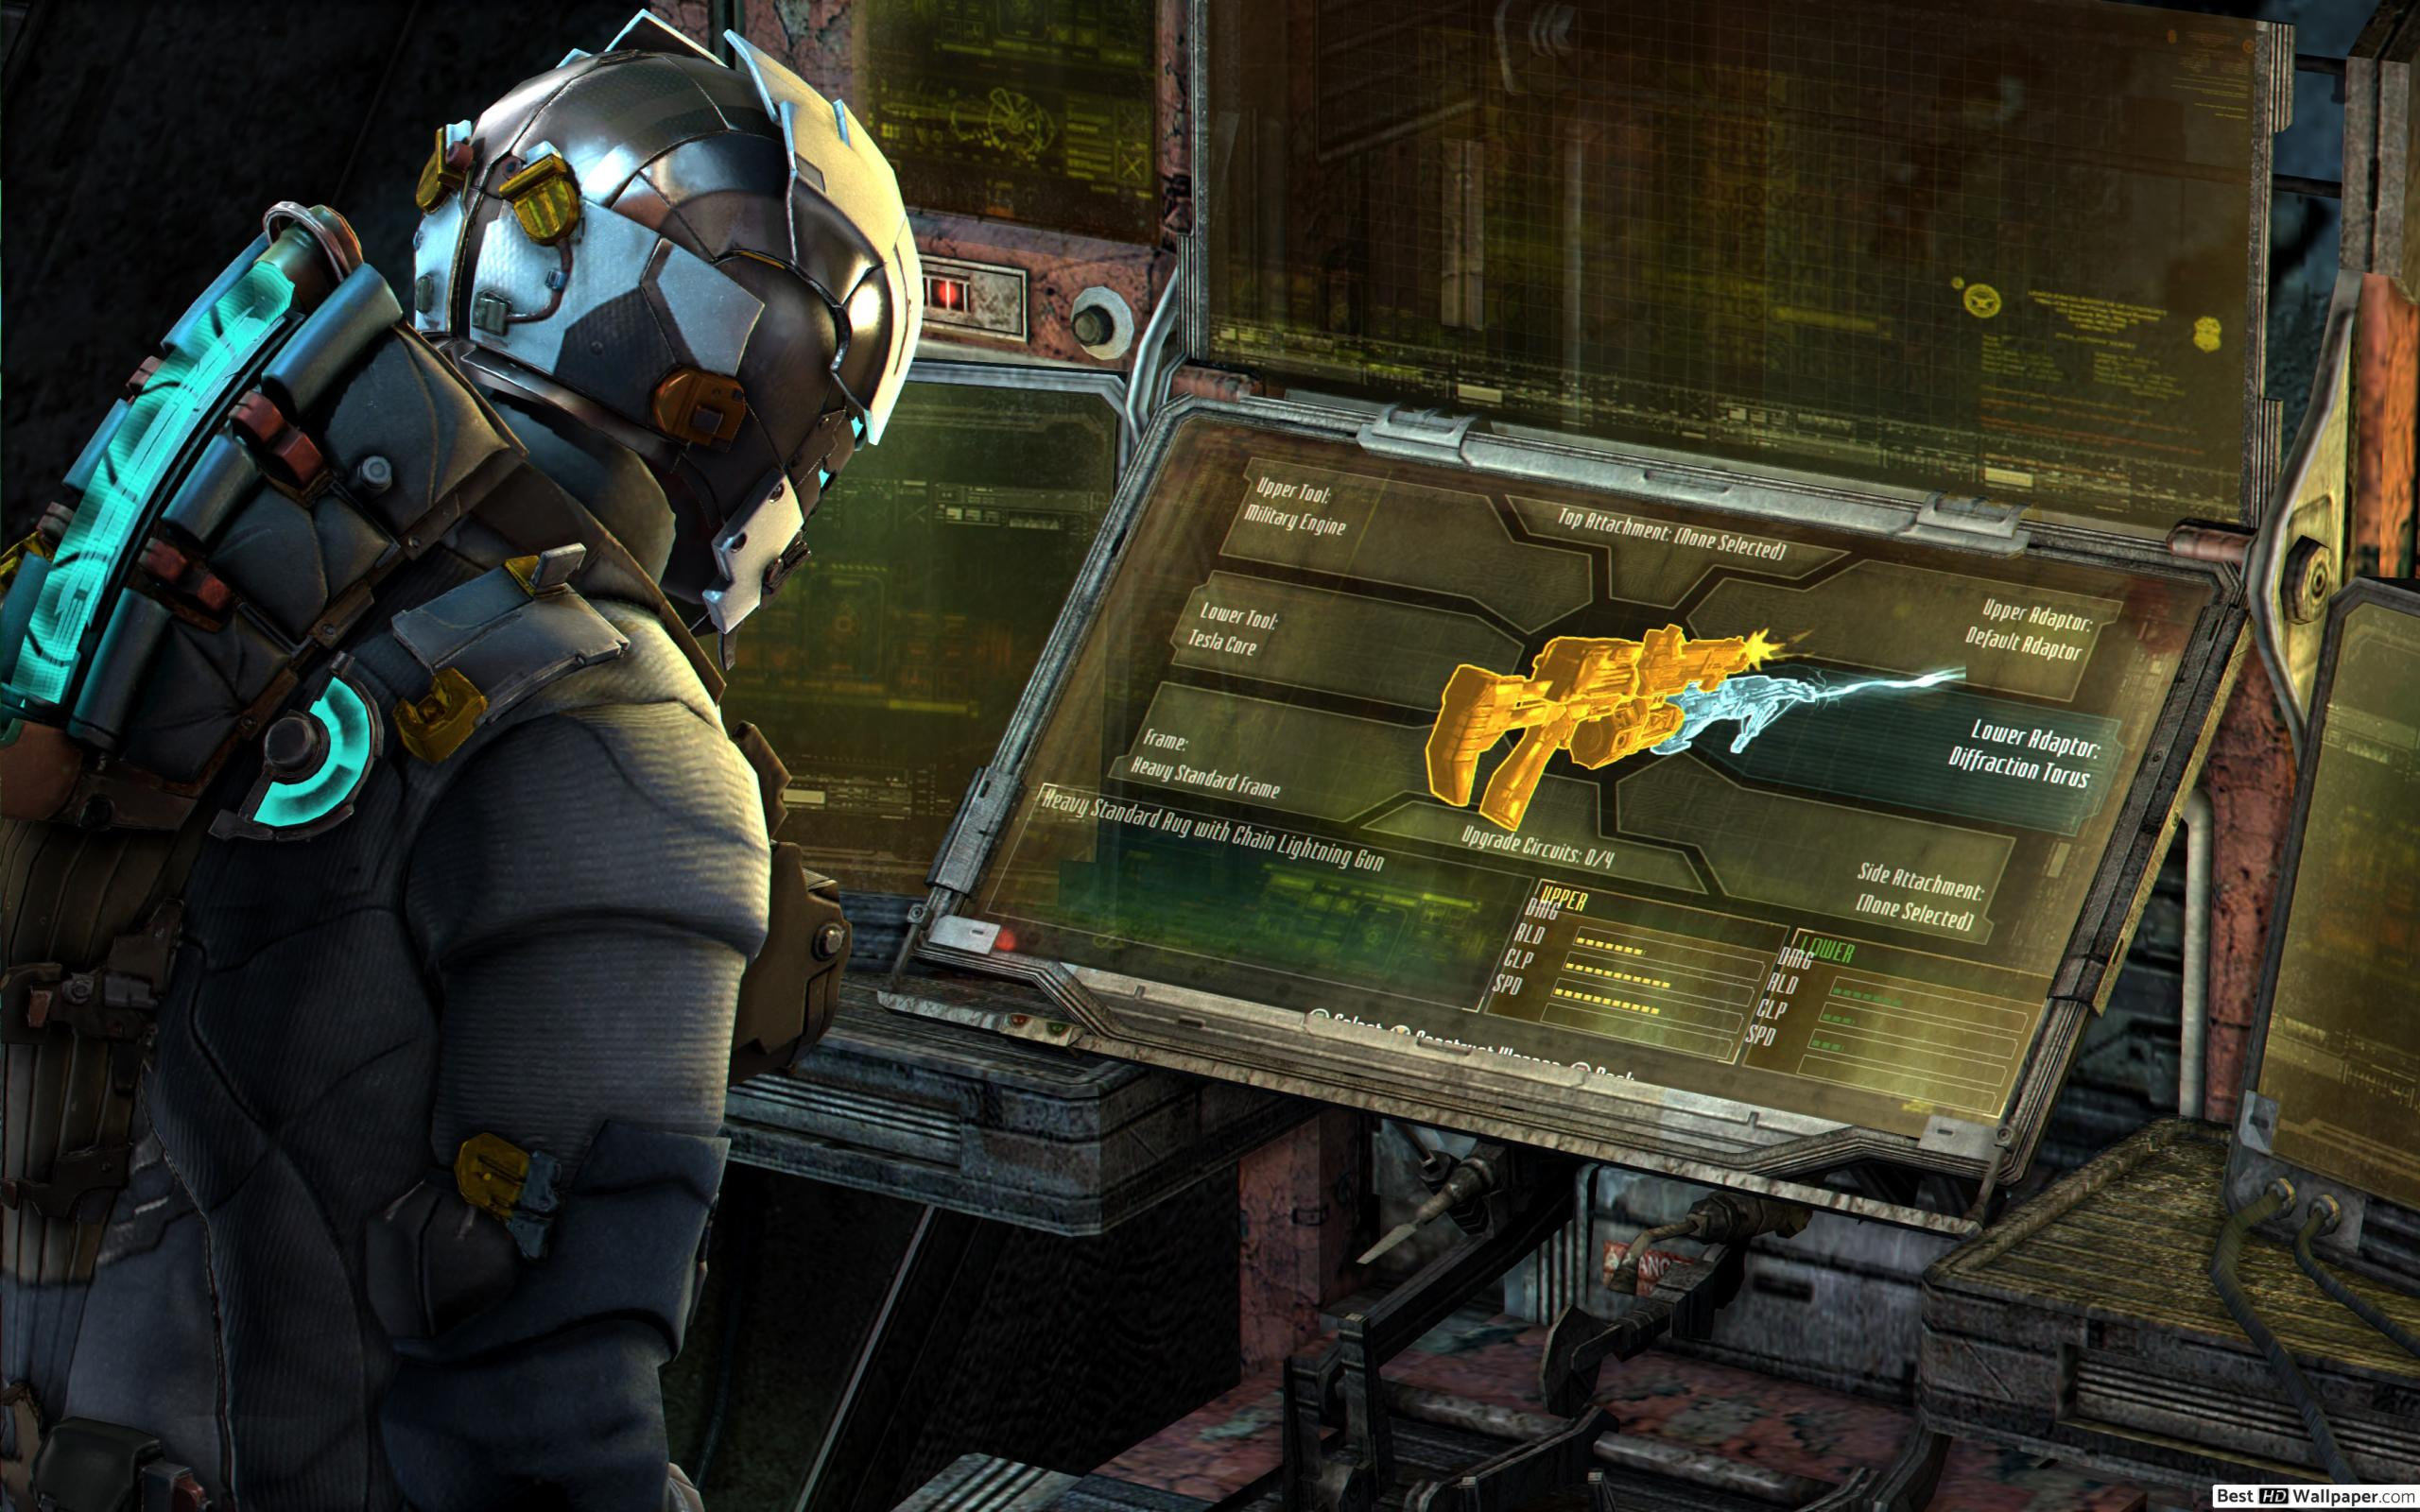 Dead Space 3 Microtransactions , HD Wallpaper & Backgrounds